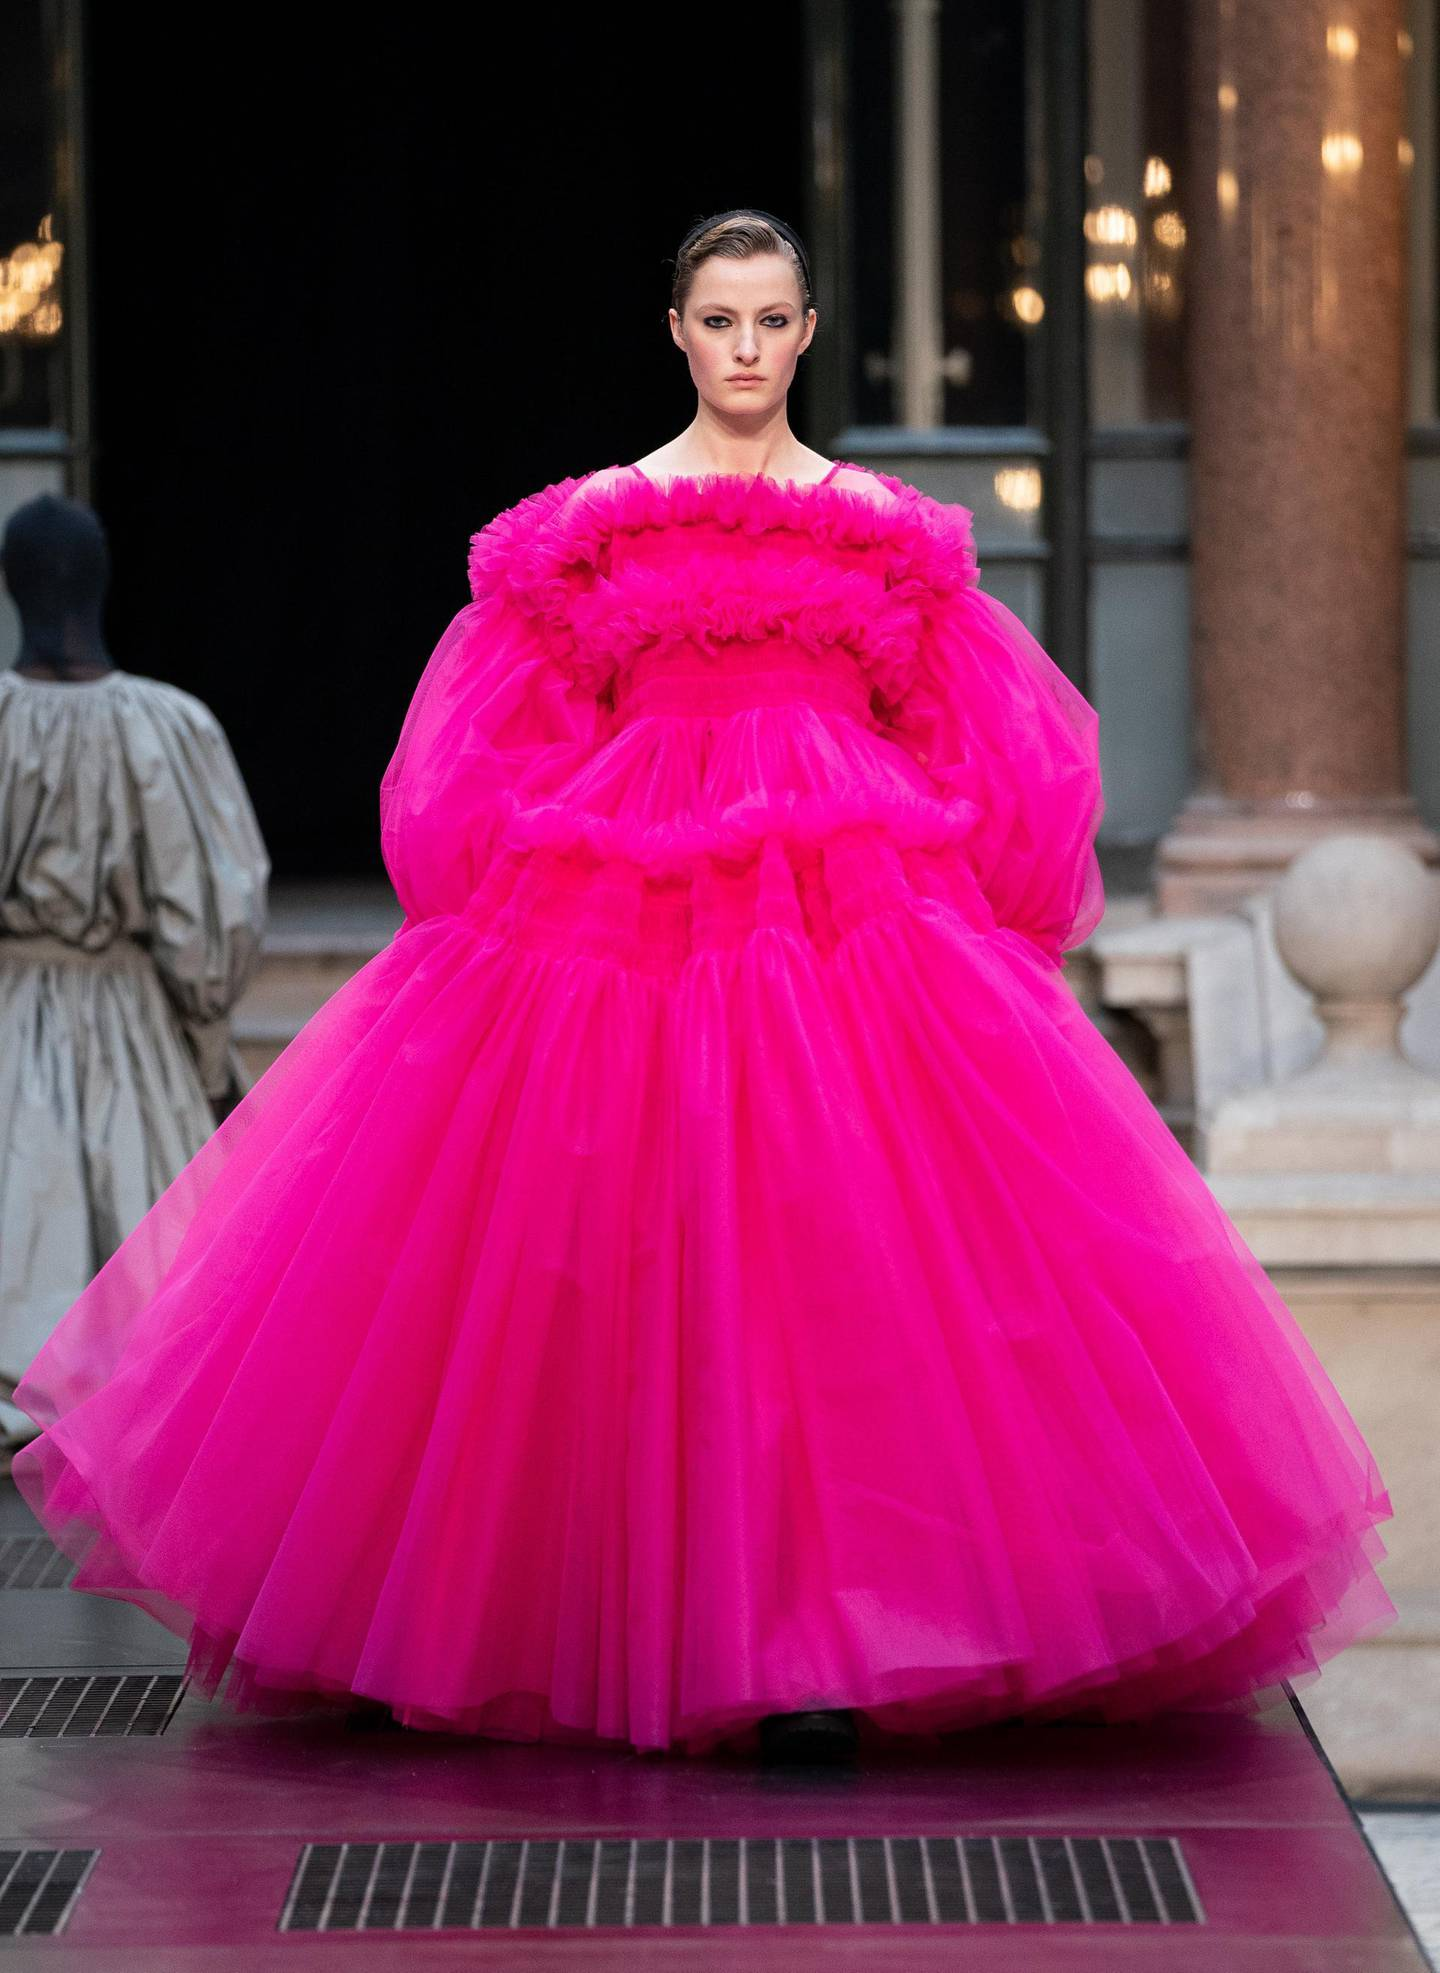 epa07374937 A model presents a creation by British designer Molly Goddard during the London Fashion Week 2019, in Central London, Britain, 16 February 2019. The LFW Fall/Winter 2019 runs from 15 to 19 February.  EPA/TOM NICHOLSON